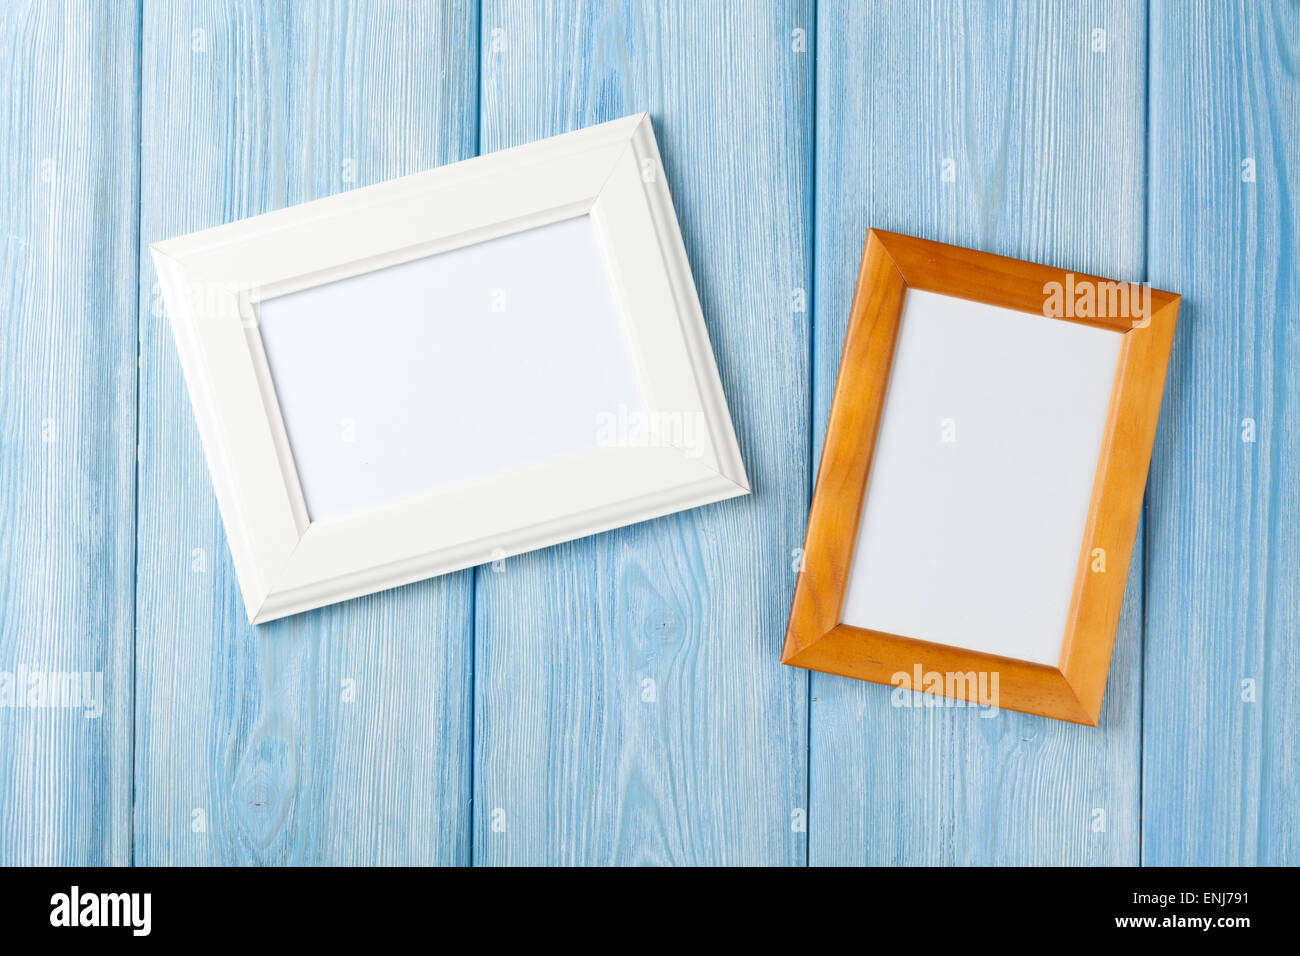 Photo frames on blue wooden wall with copy space - Stock Image